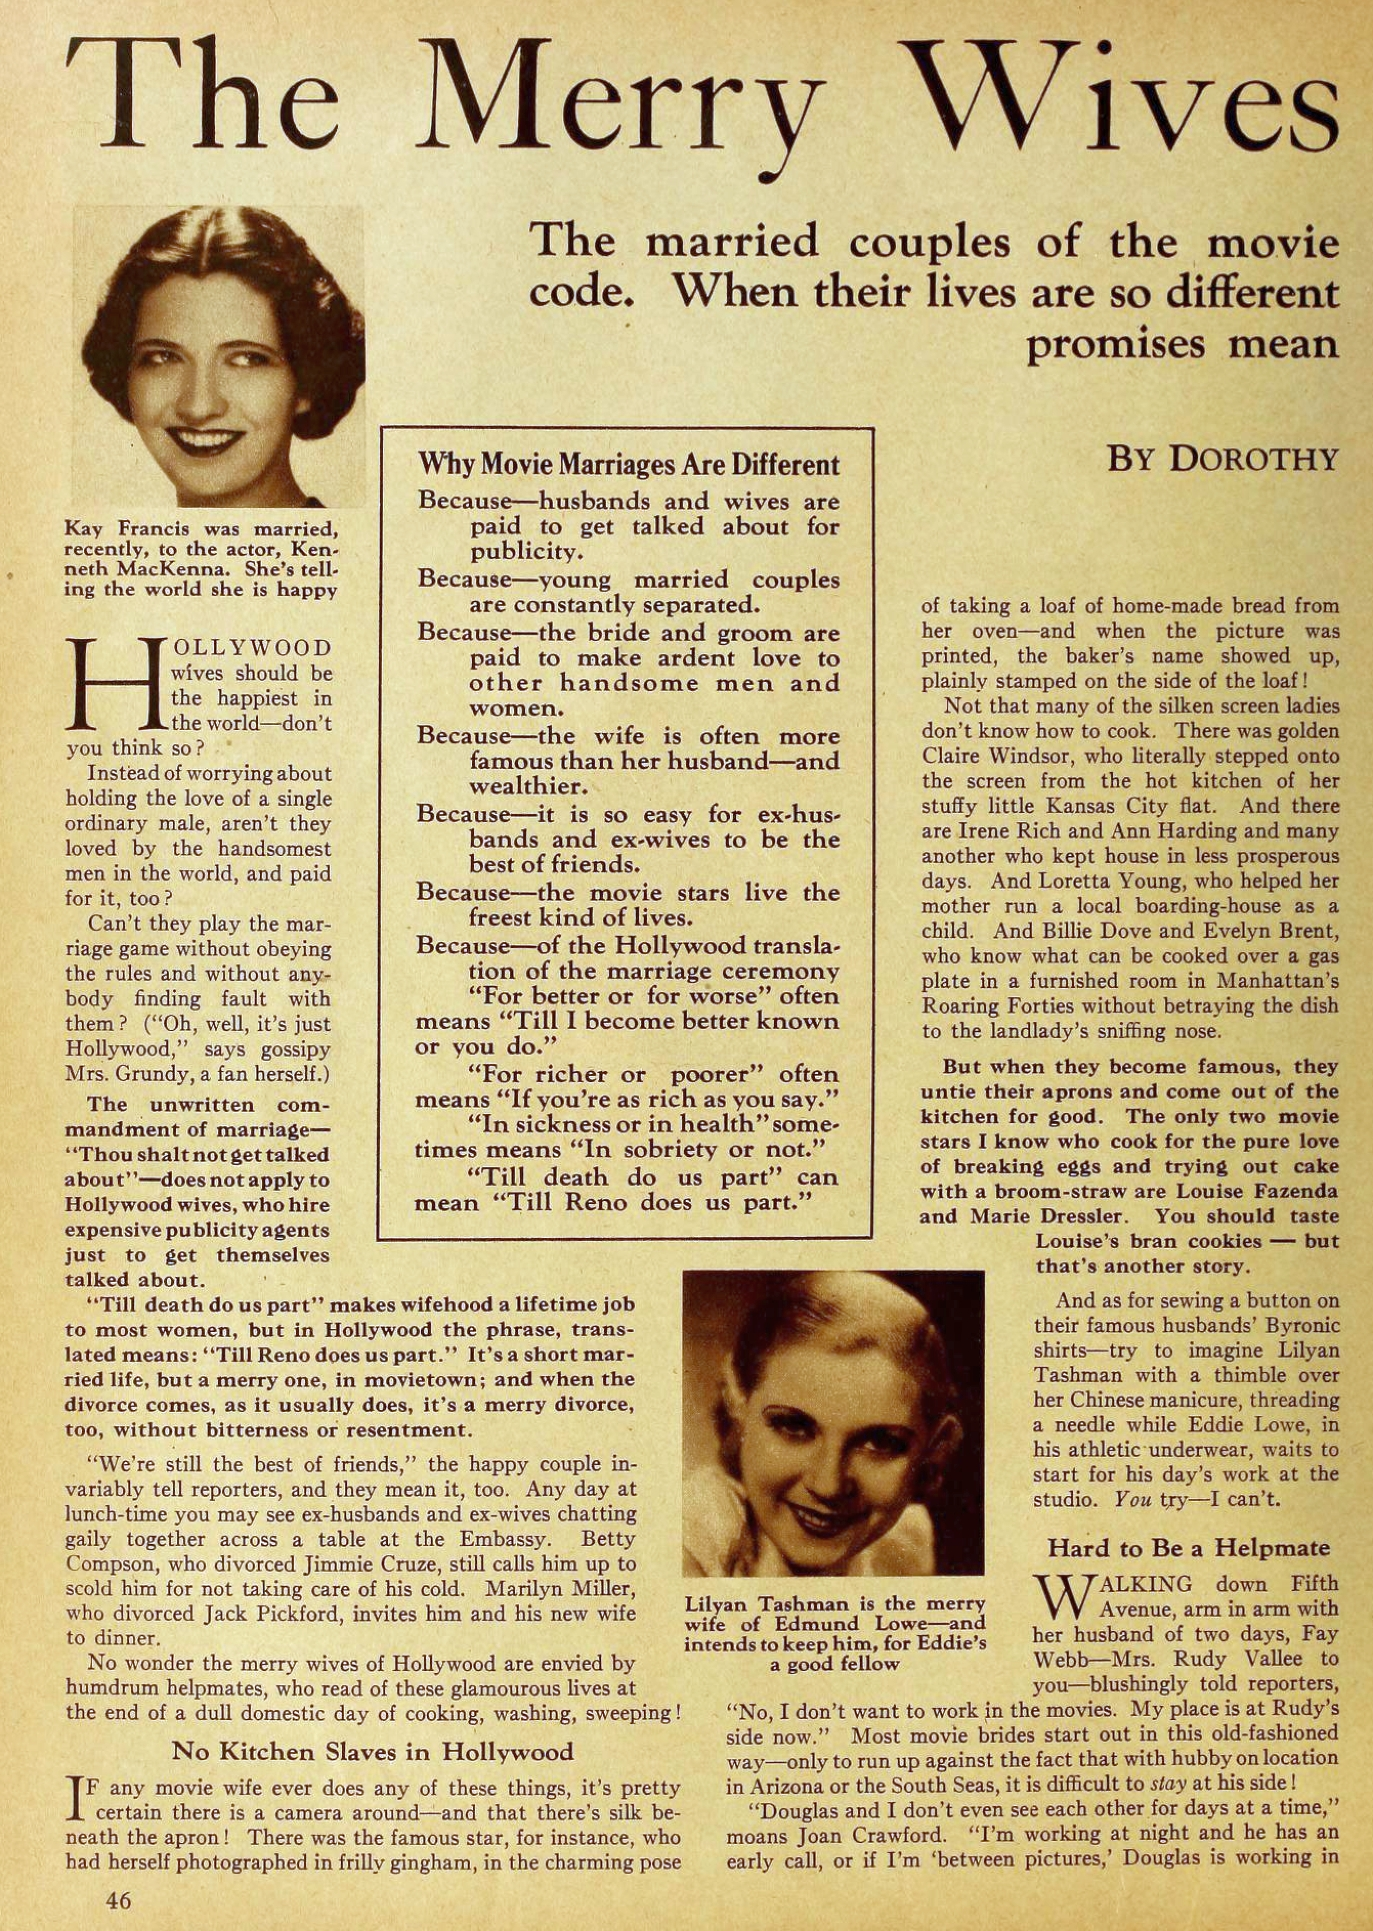 carole lombard motion picture october 1931 merry wives of hollywood 00a